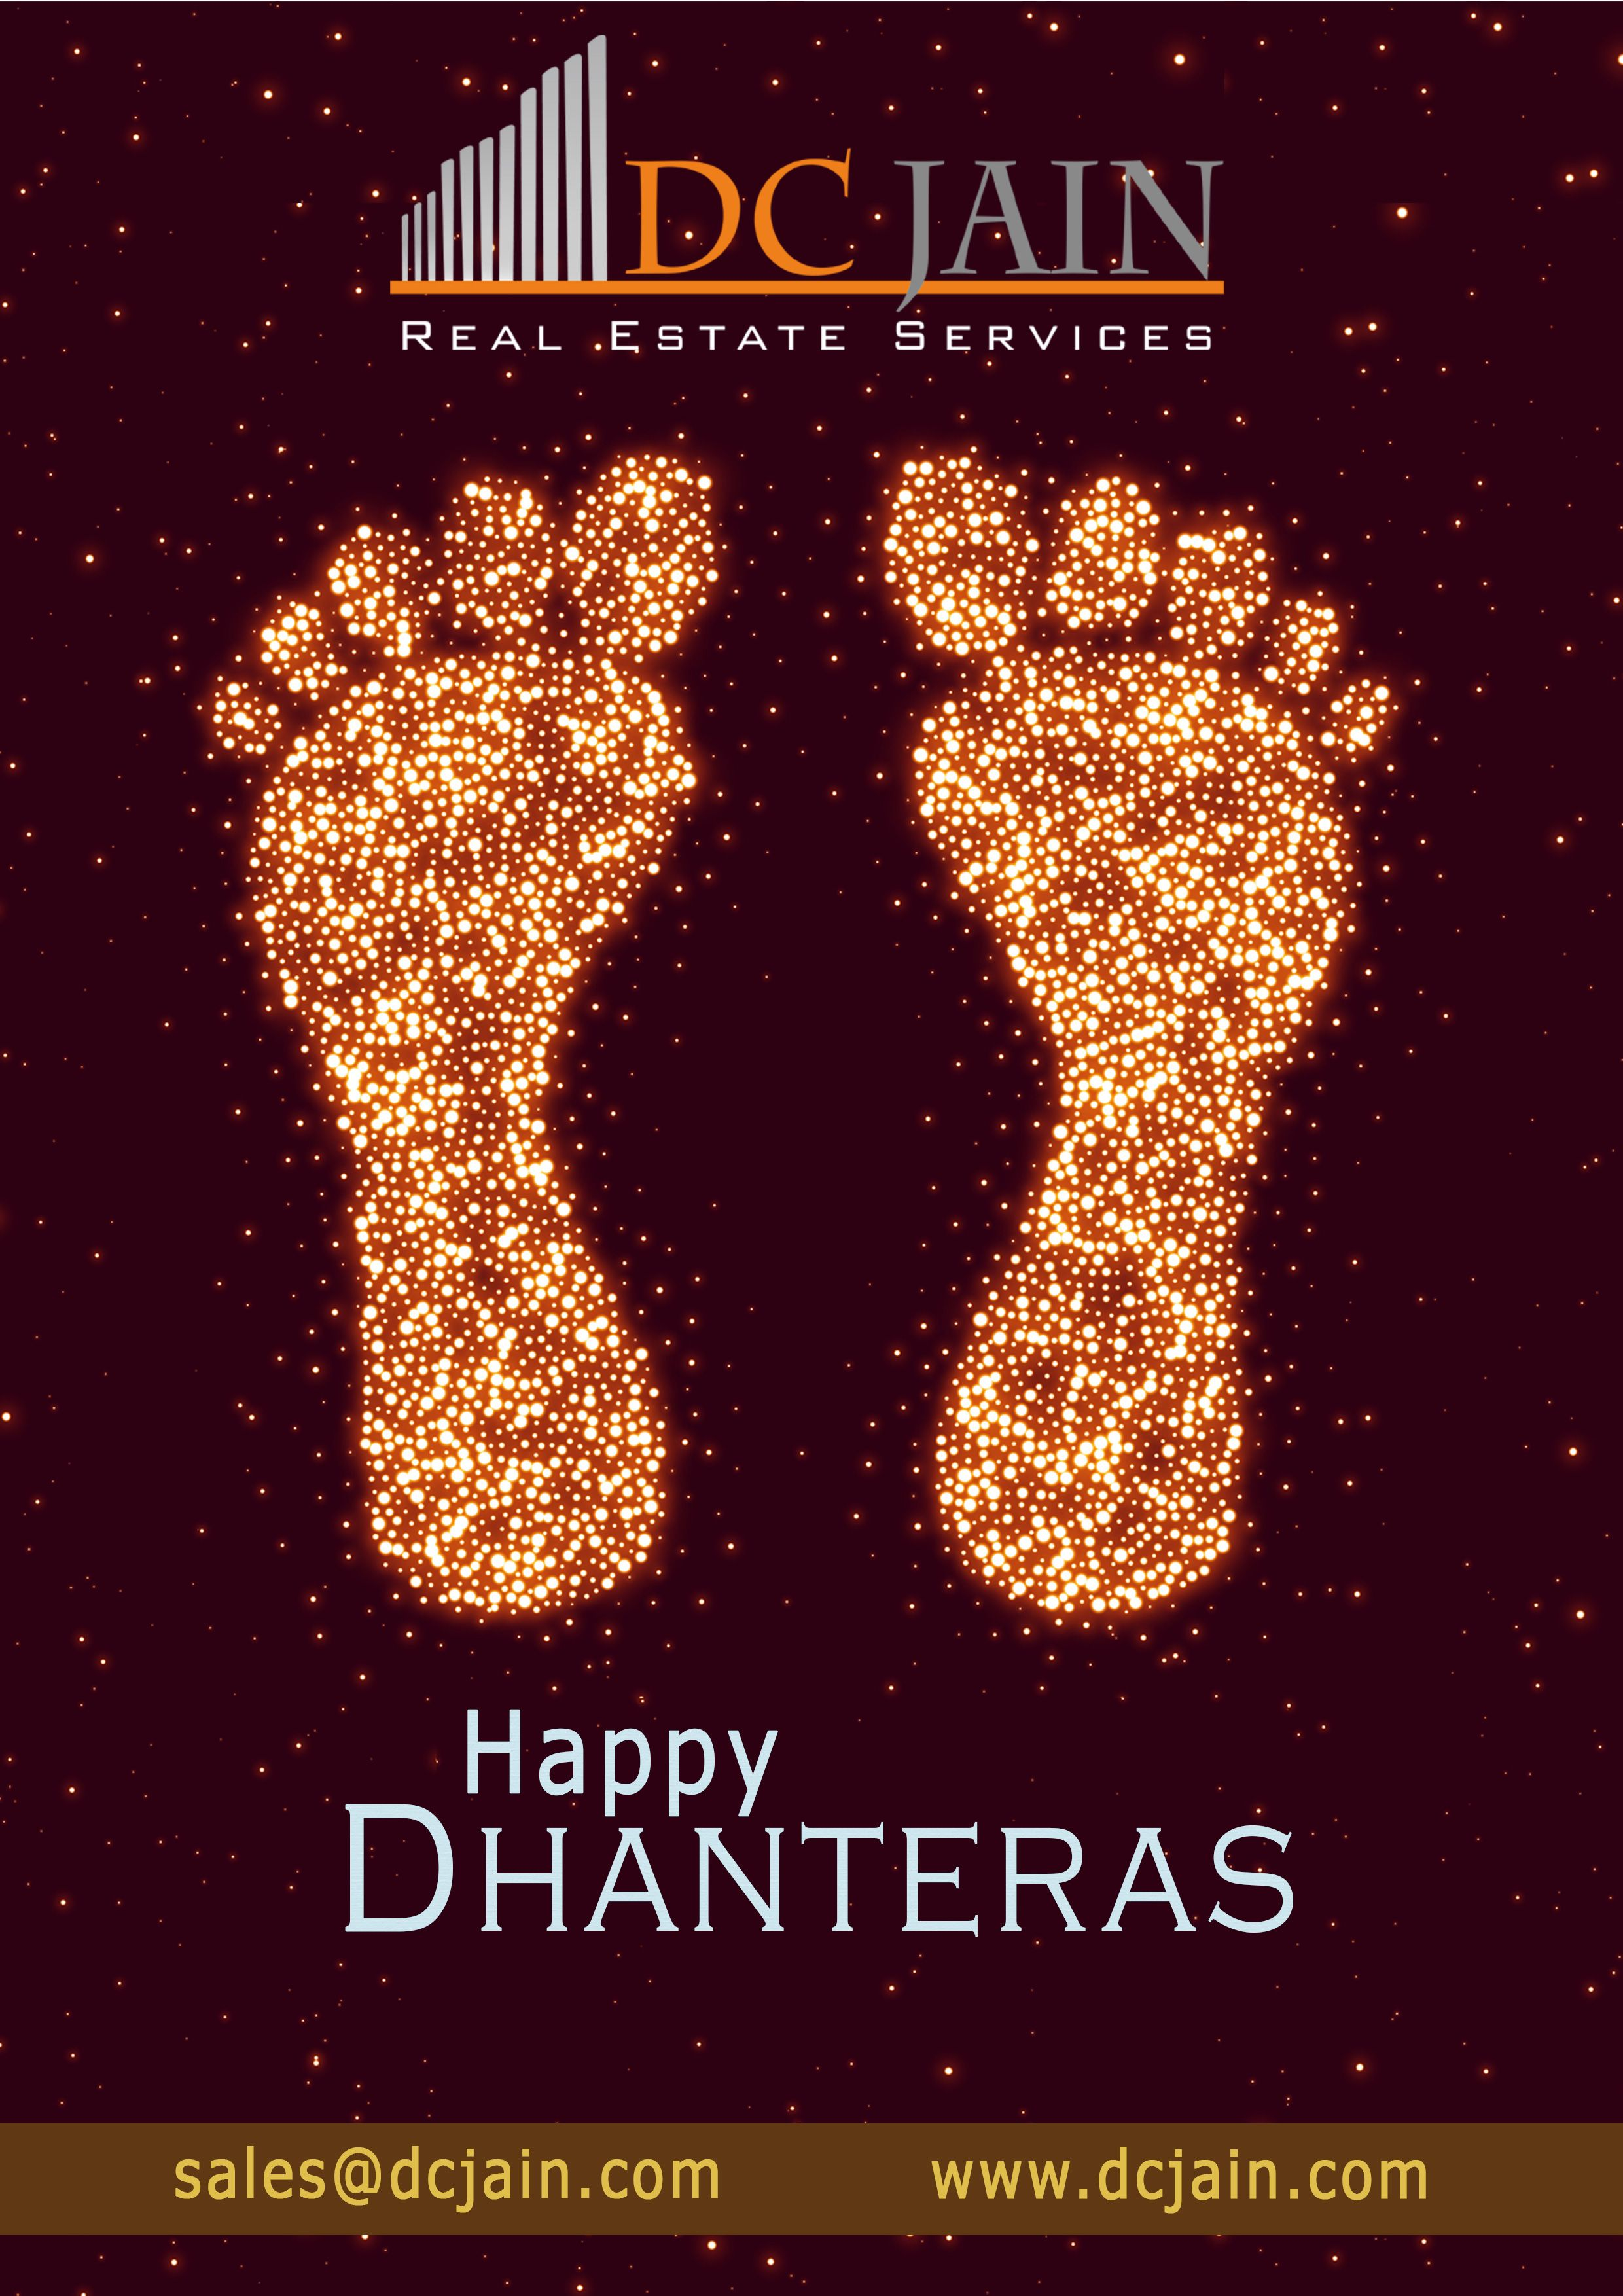 Greetings to all on the auspicious occasion of Dhanteras